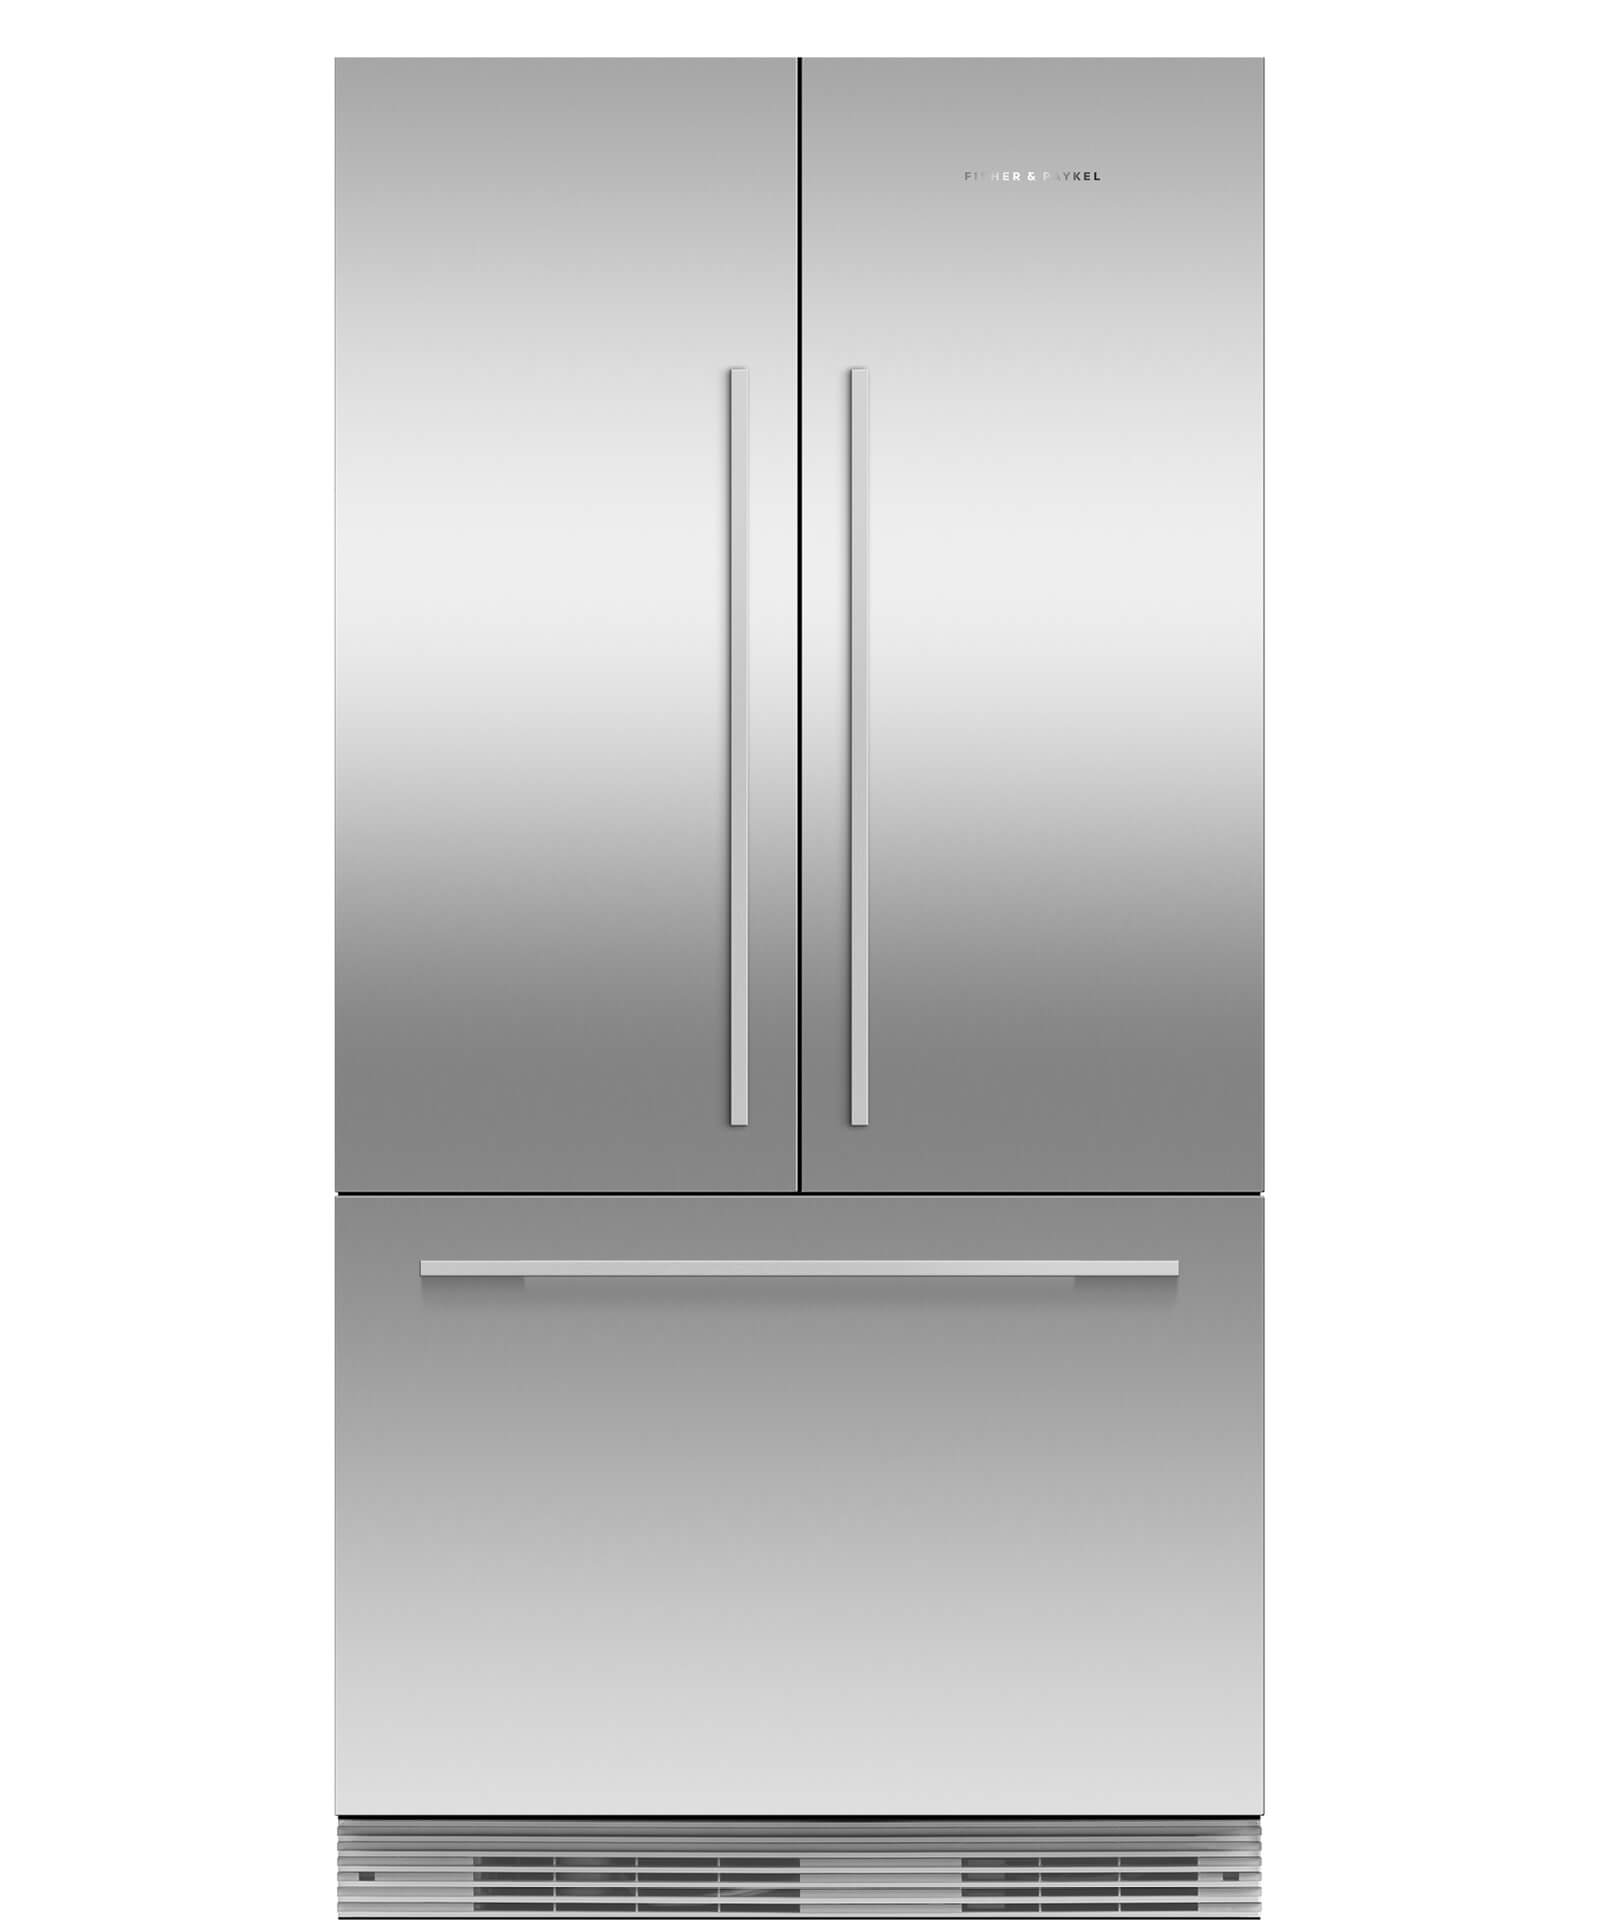 Rs90a1 Activesmart Fridge 900mm French Door Slide In Panel Ready Refrigerator Understanding Wiring Diagram Home Improvement Prevnext